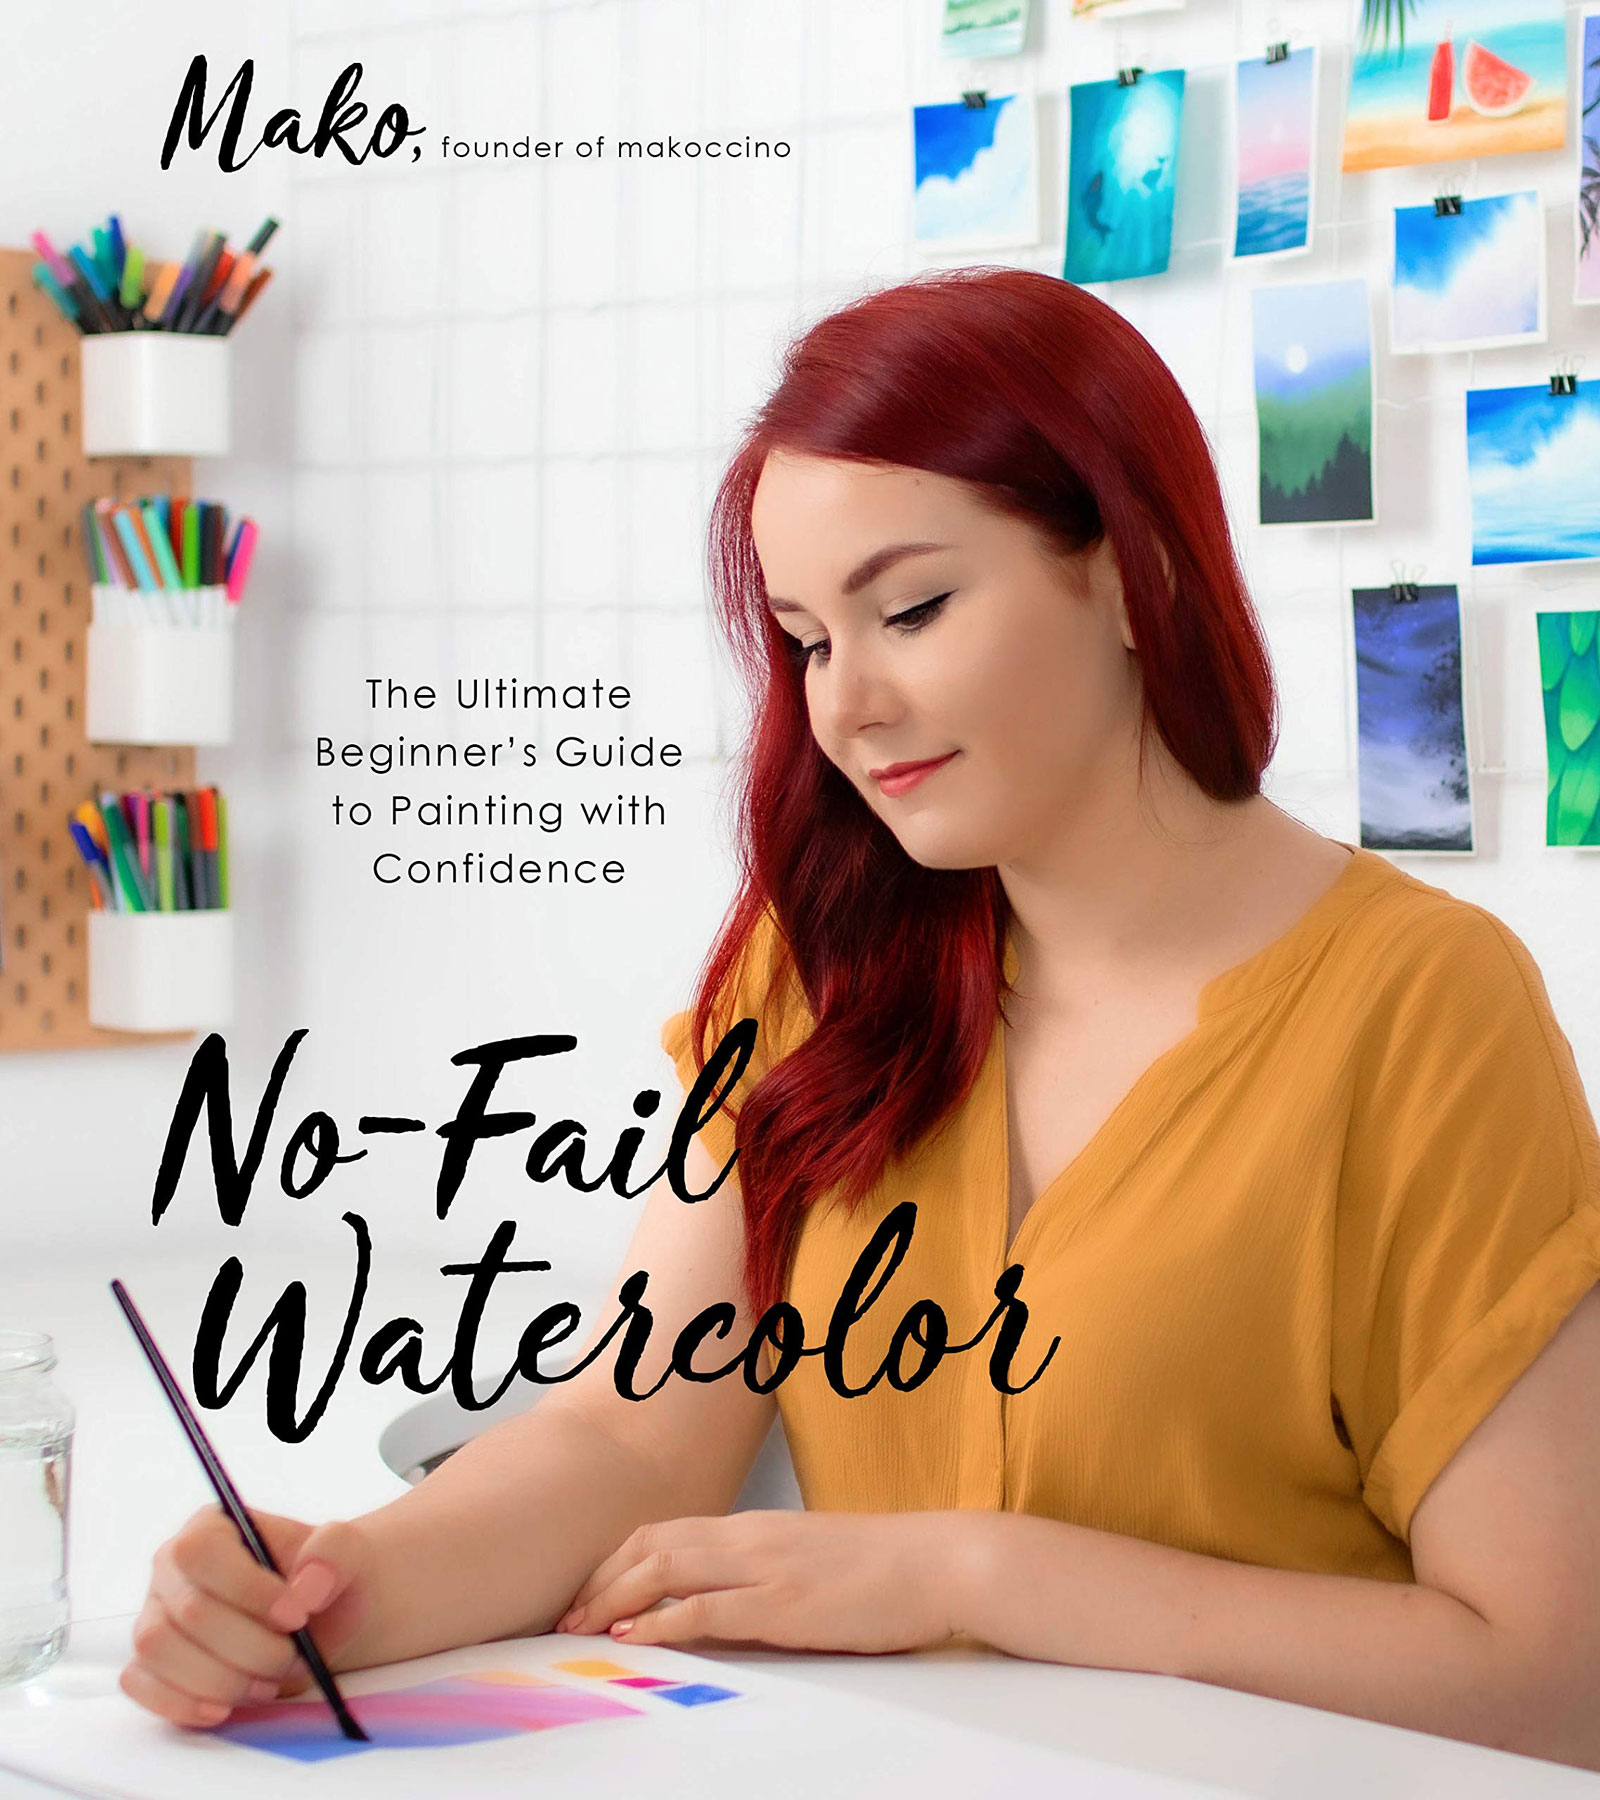 Galentine's Day gift ideas - No-Fail Watercolor: The Ultimate Beginner's Guide to Painting with Confidence by Mako